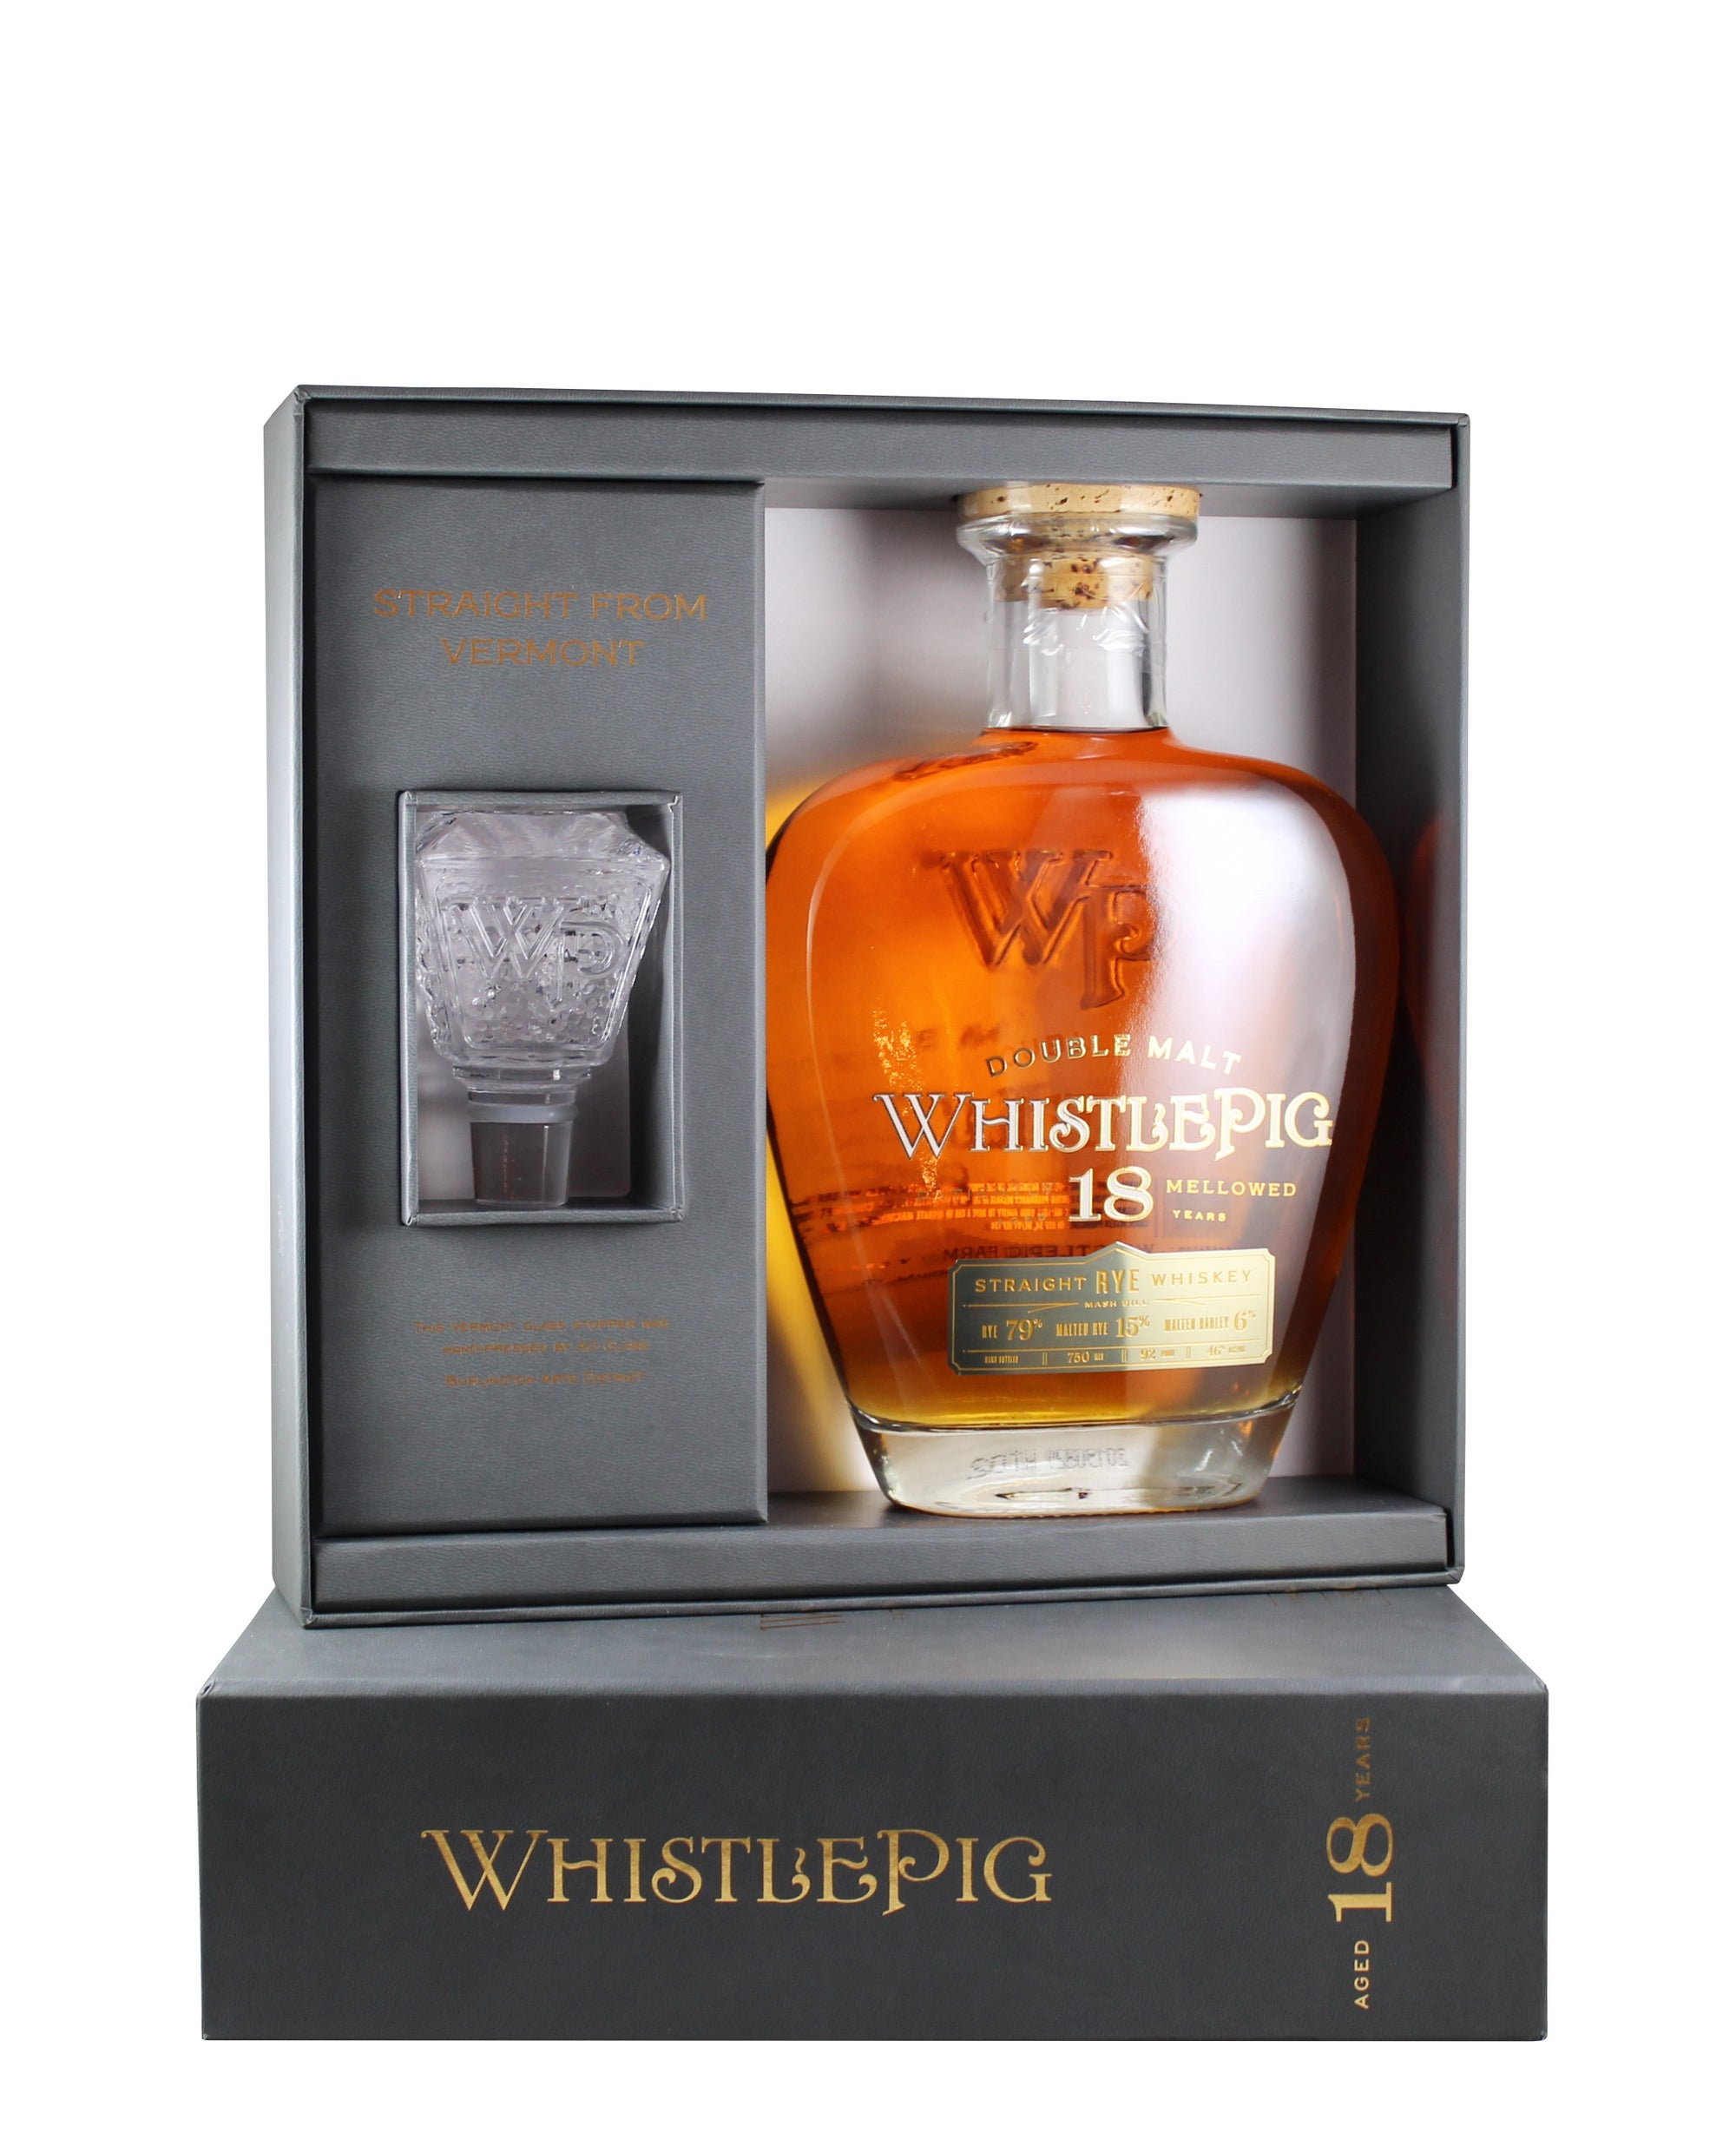 WhistlePig 18 Year Rye Whiskey (Middlebury, Vermont)